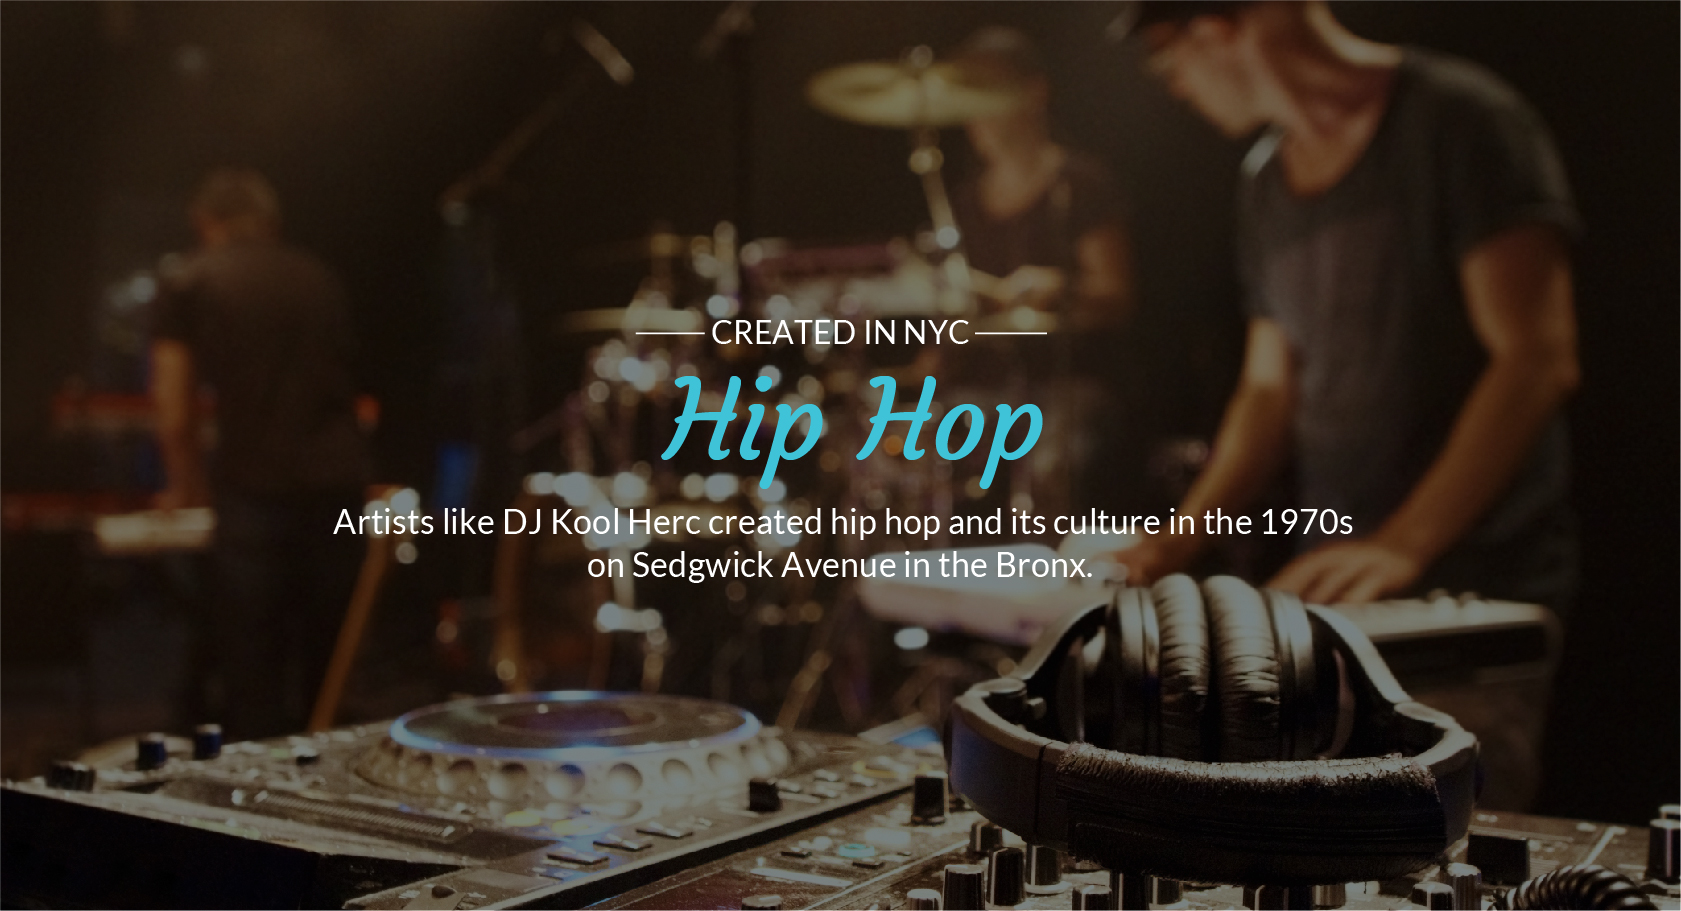 Created in NYC, Hip Hop